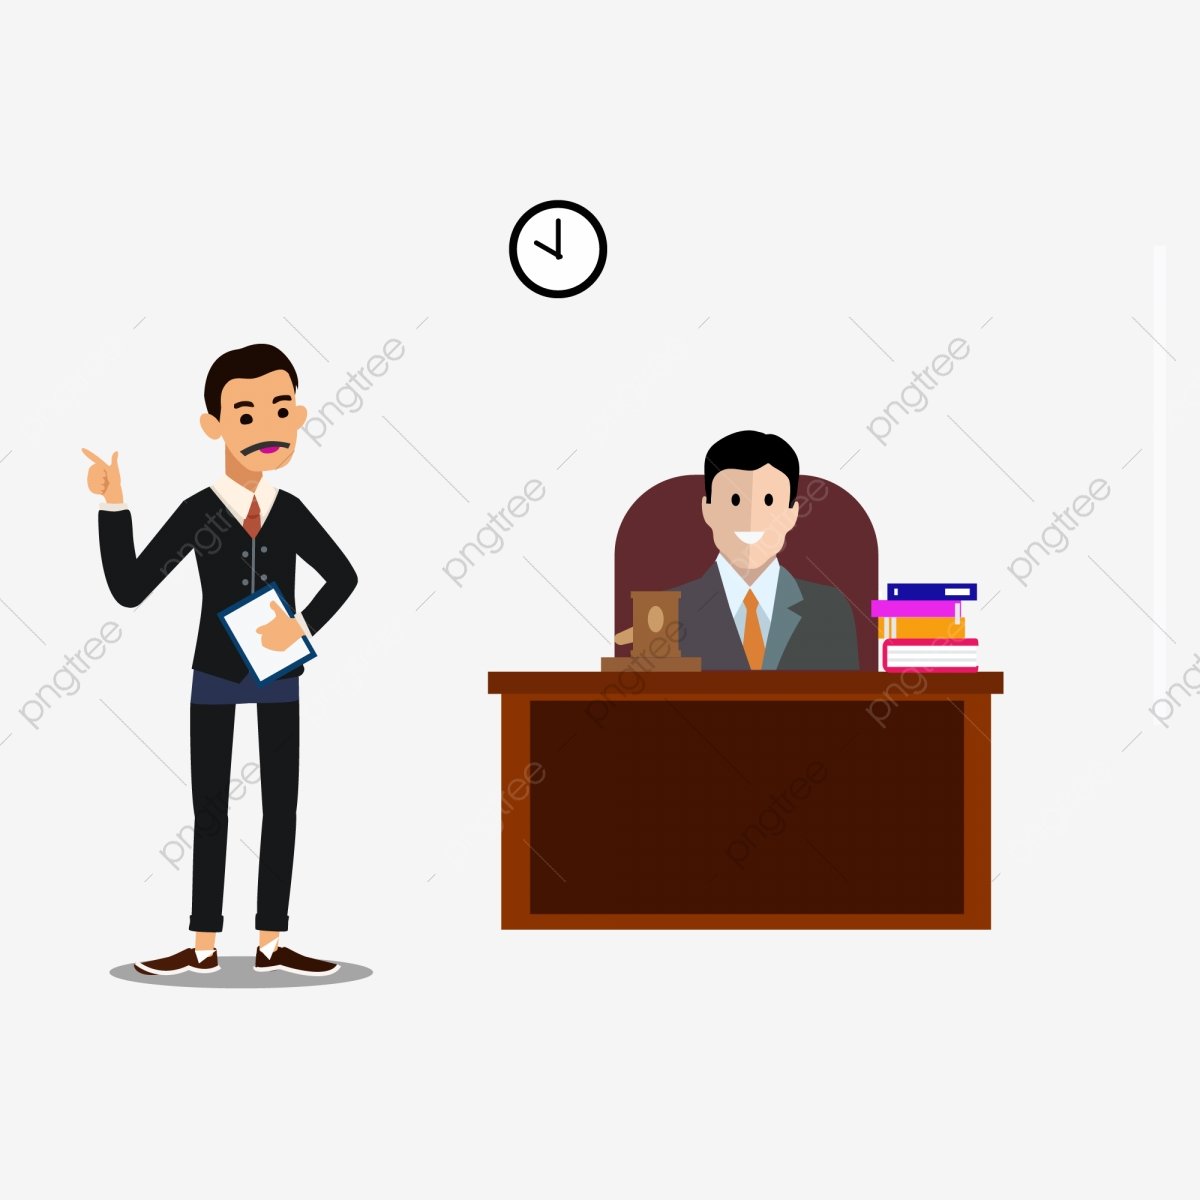 Cartoon Lawyer Illustration Design, Cartoon, Lawyer.